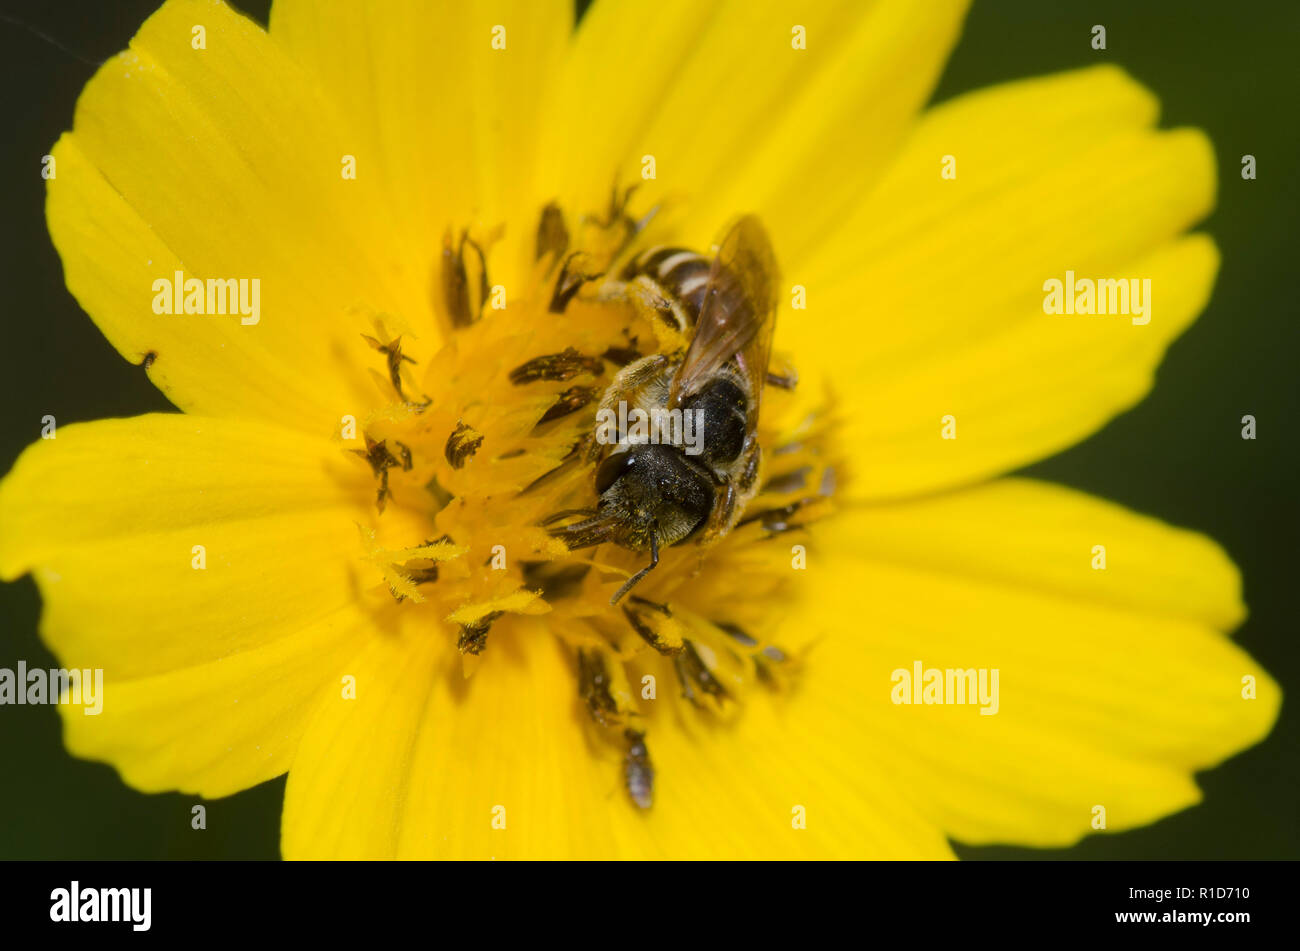 Sweat Bee, Halictus ligatus, on tickseed, Coreopsis sp. - Stock Image